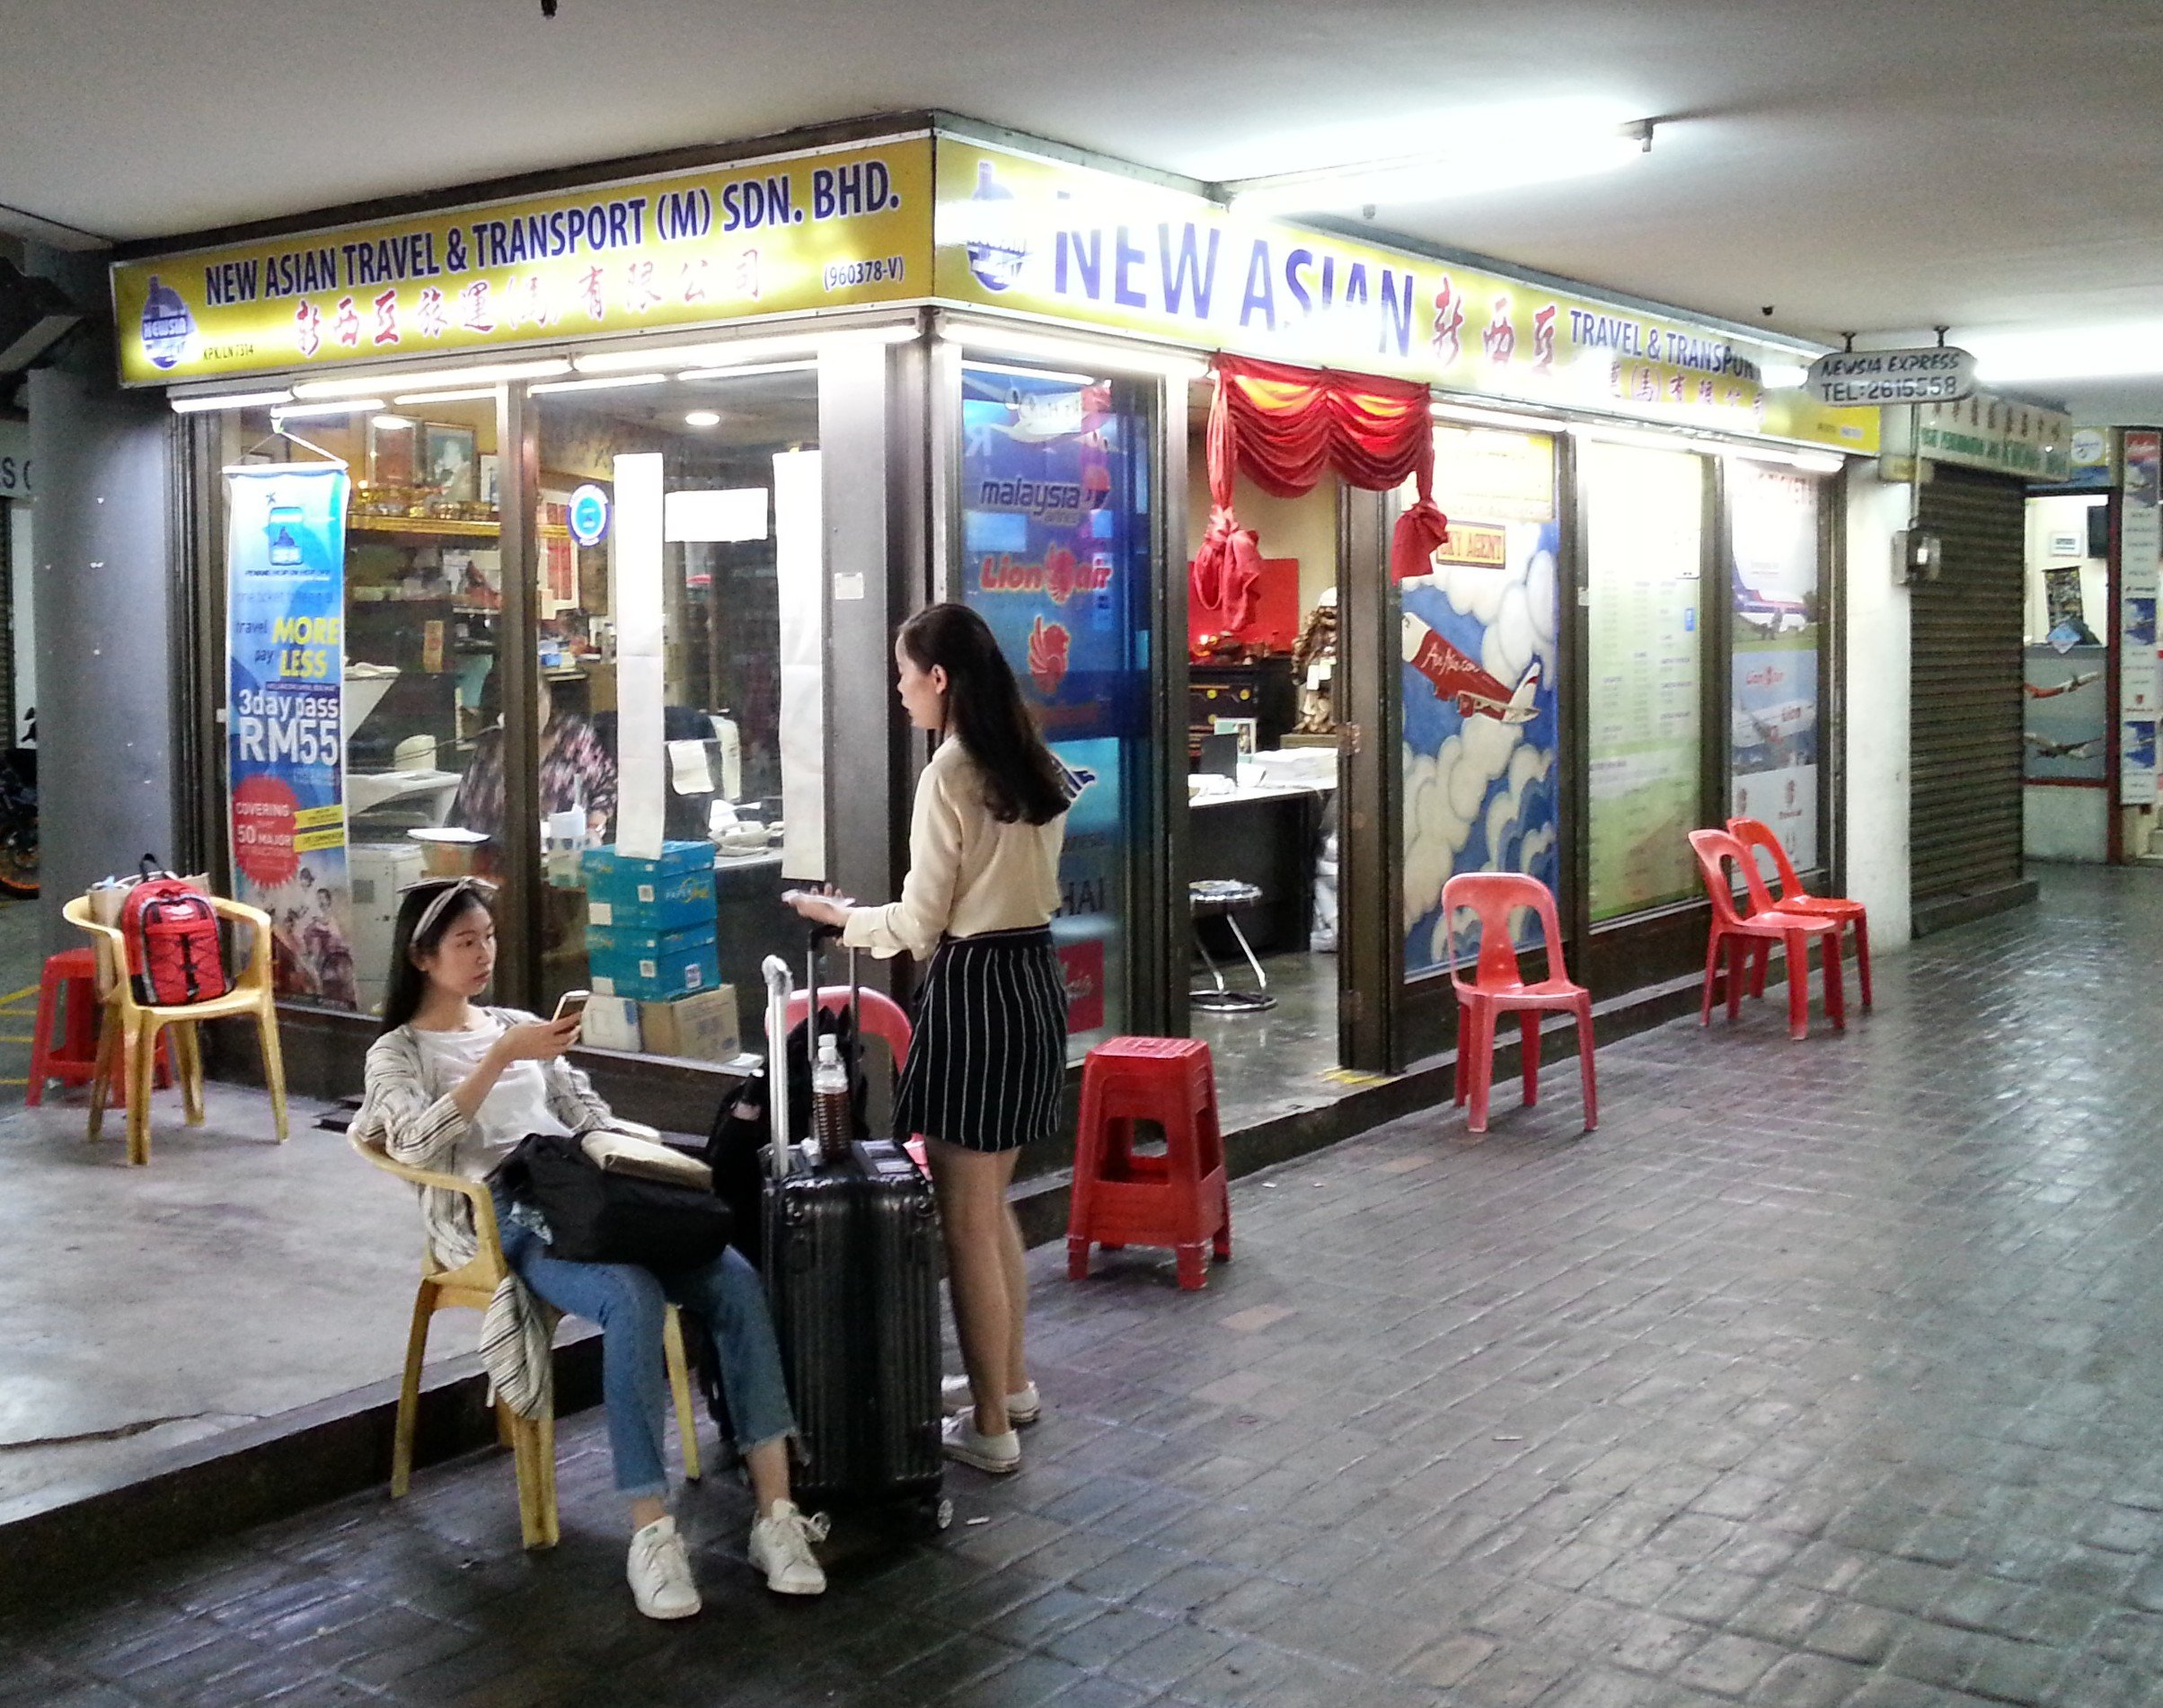 New Asian Travel Office in Penang